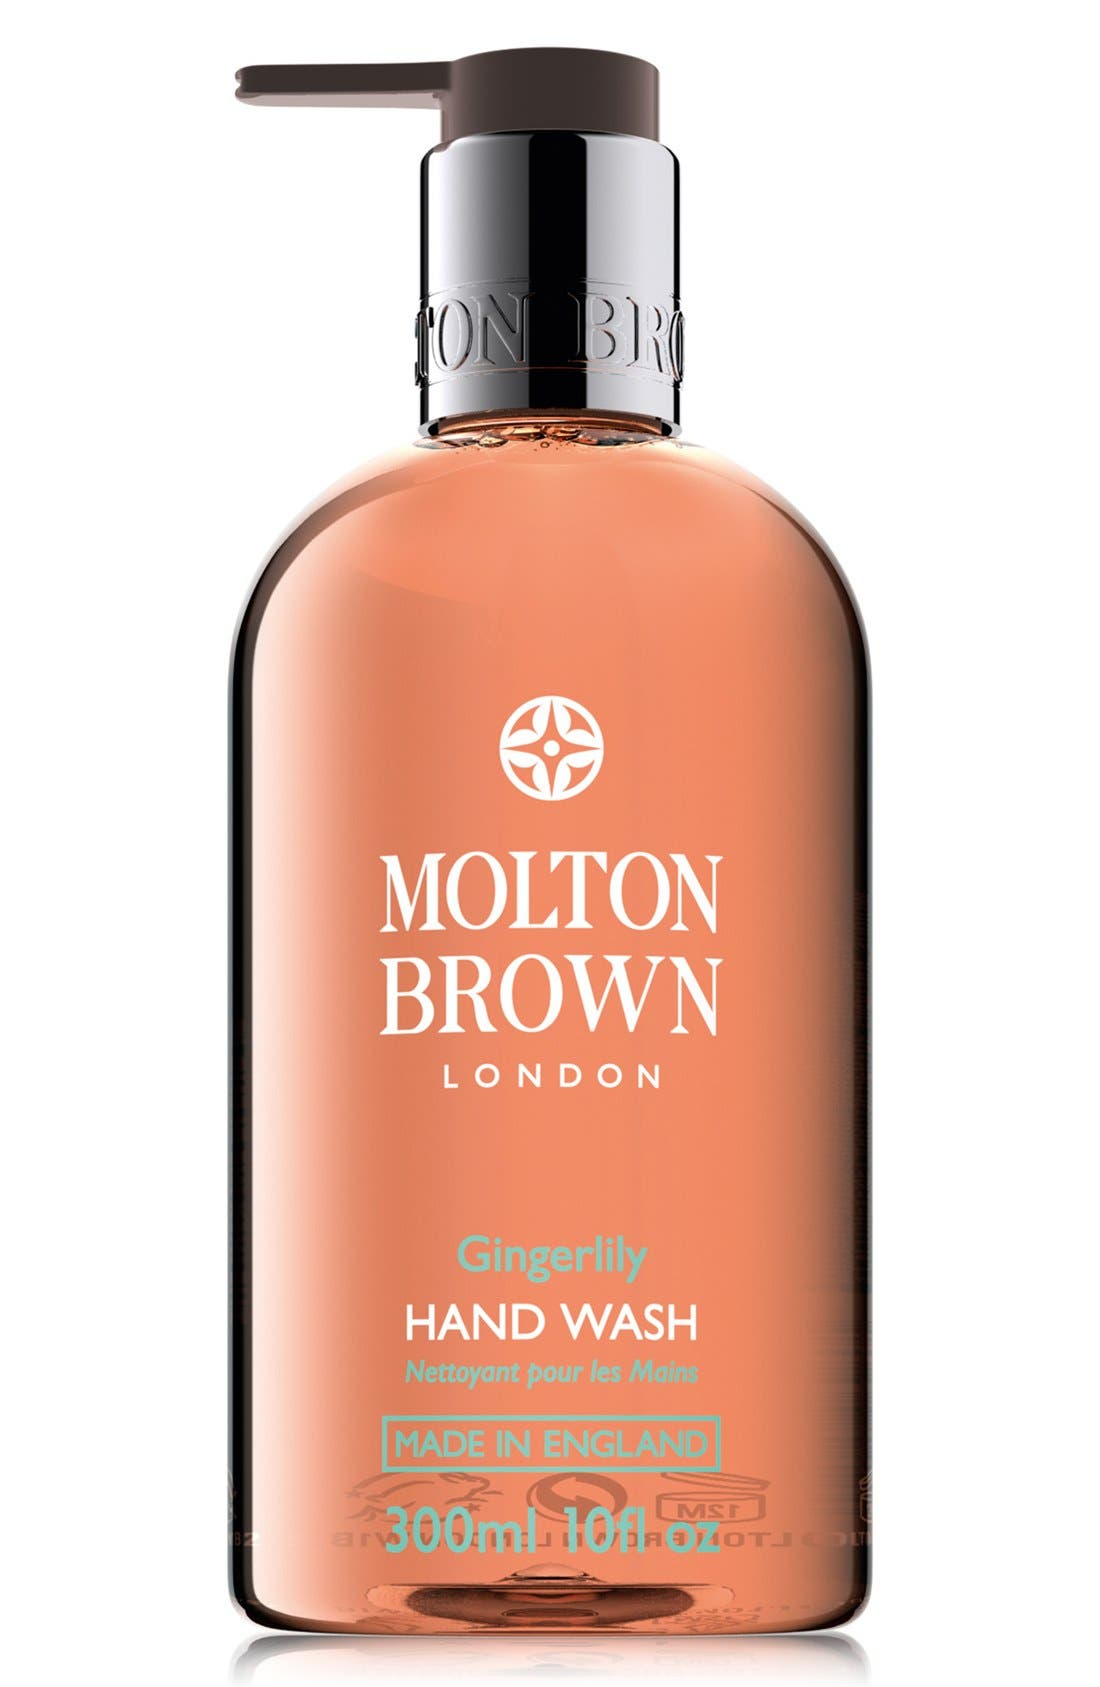 MOLTON BROWN London Hand Wash